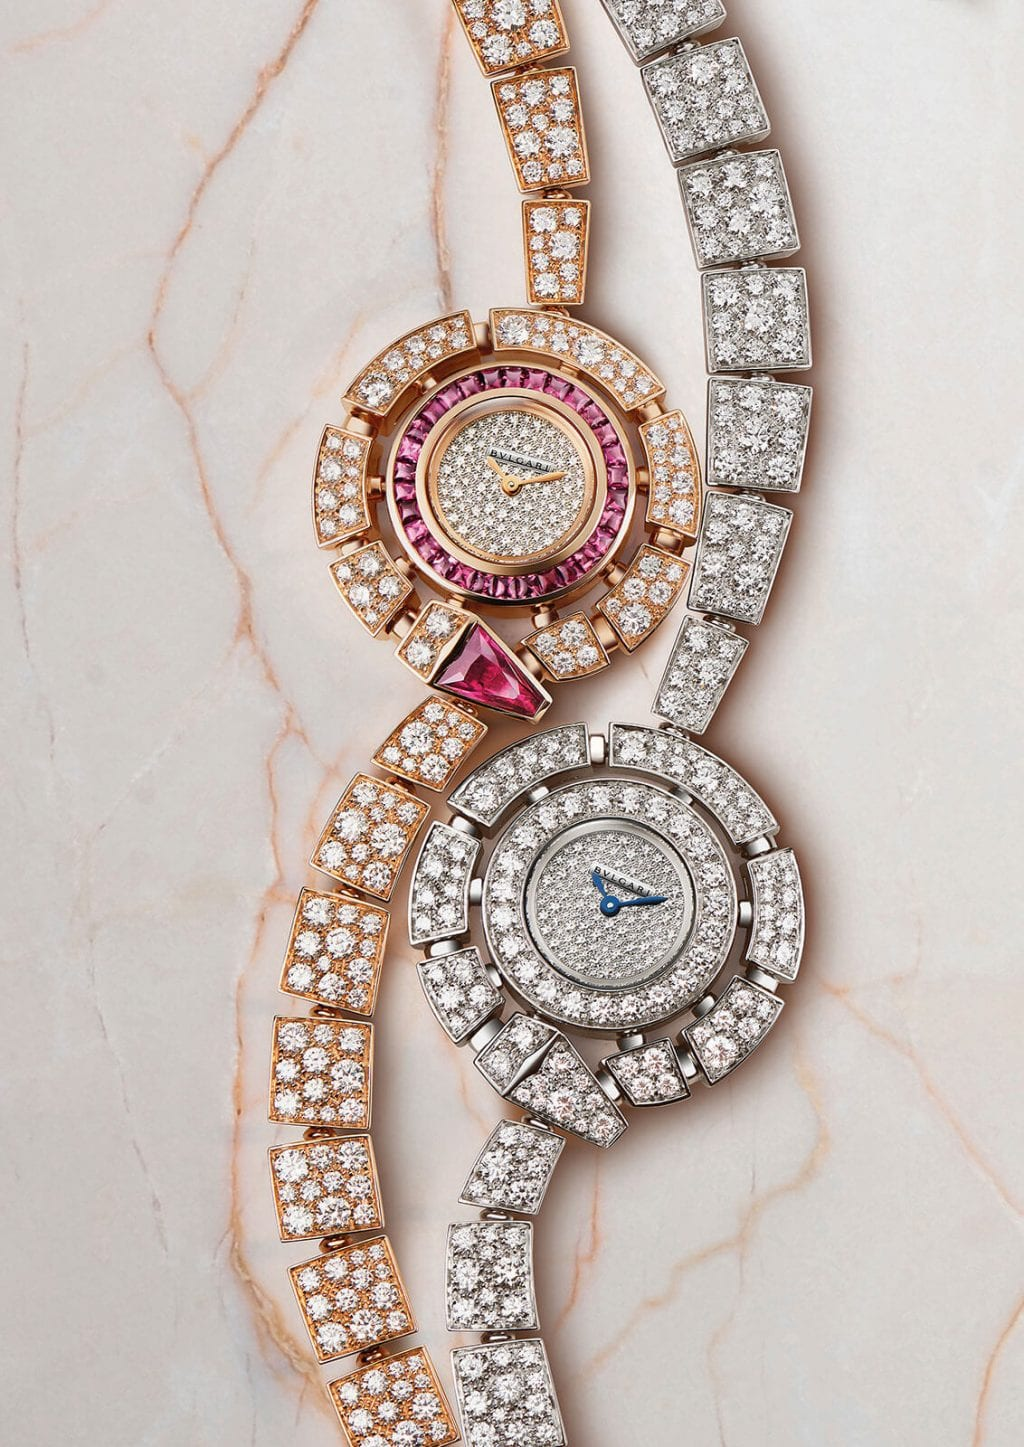 Bulgari Serpenti Incantat stylish watches